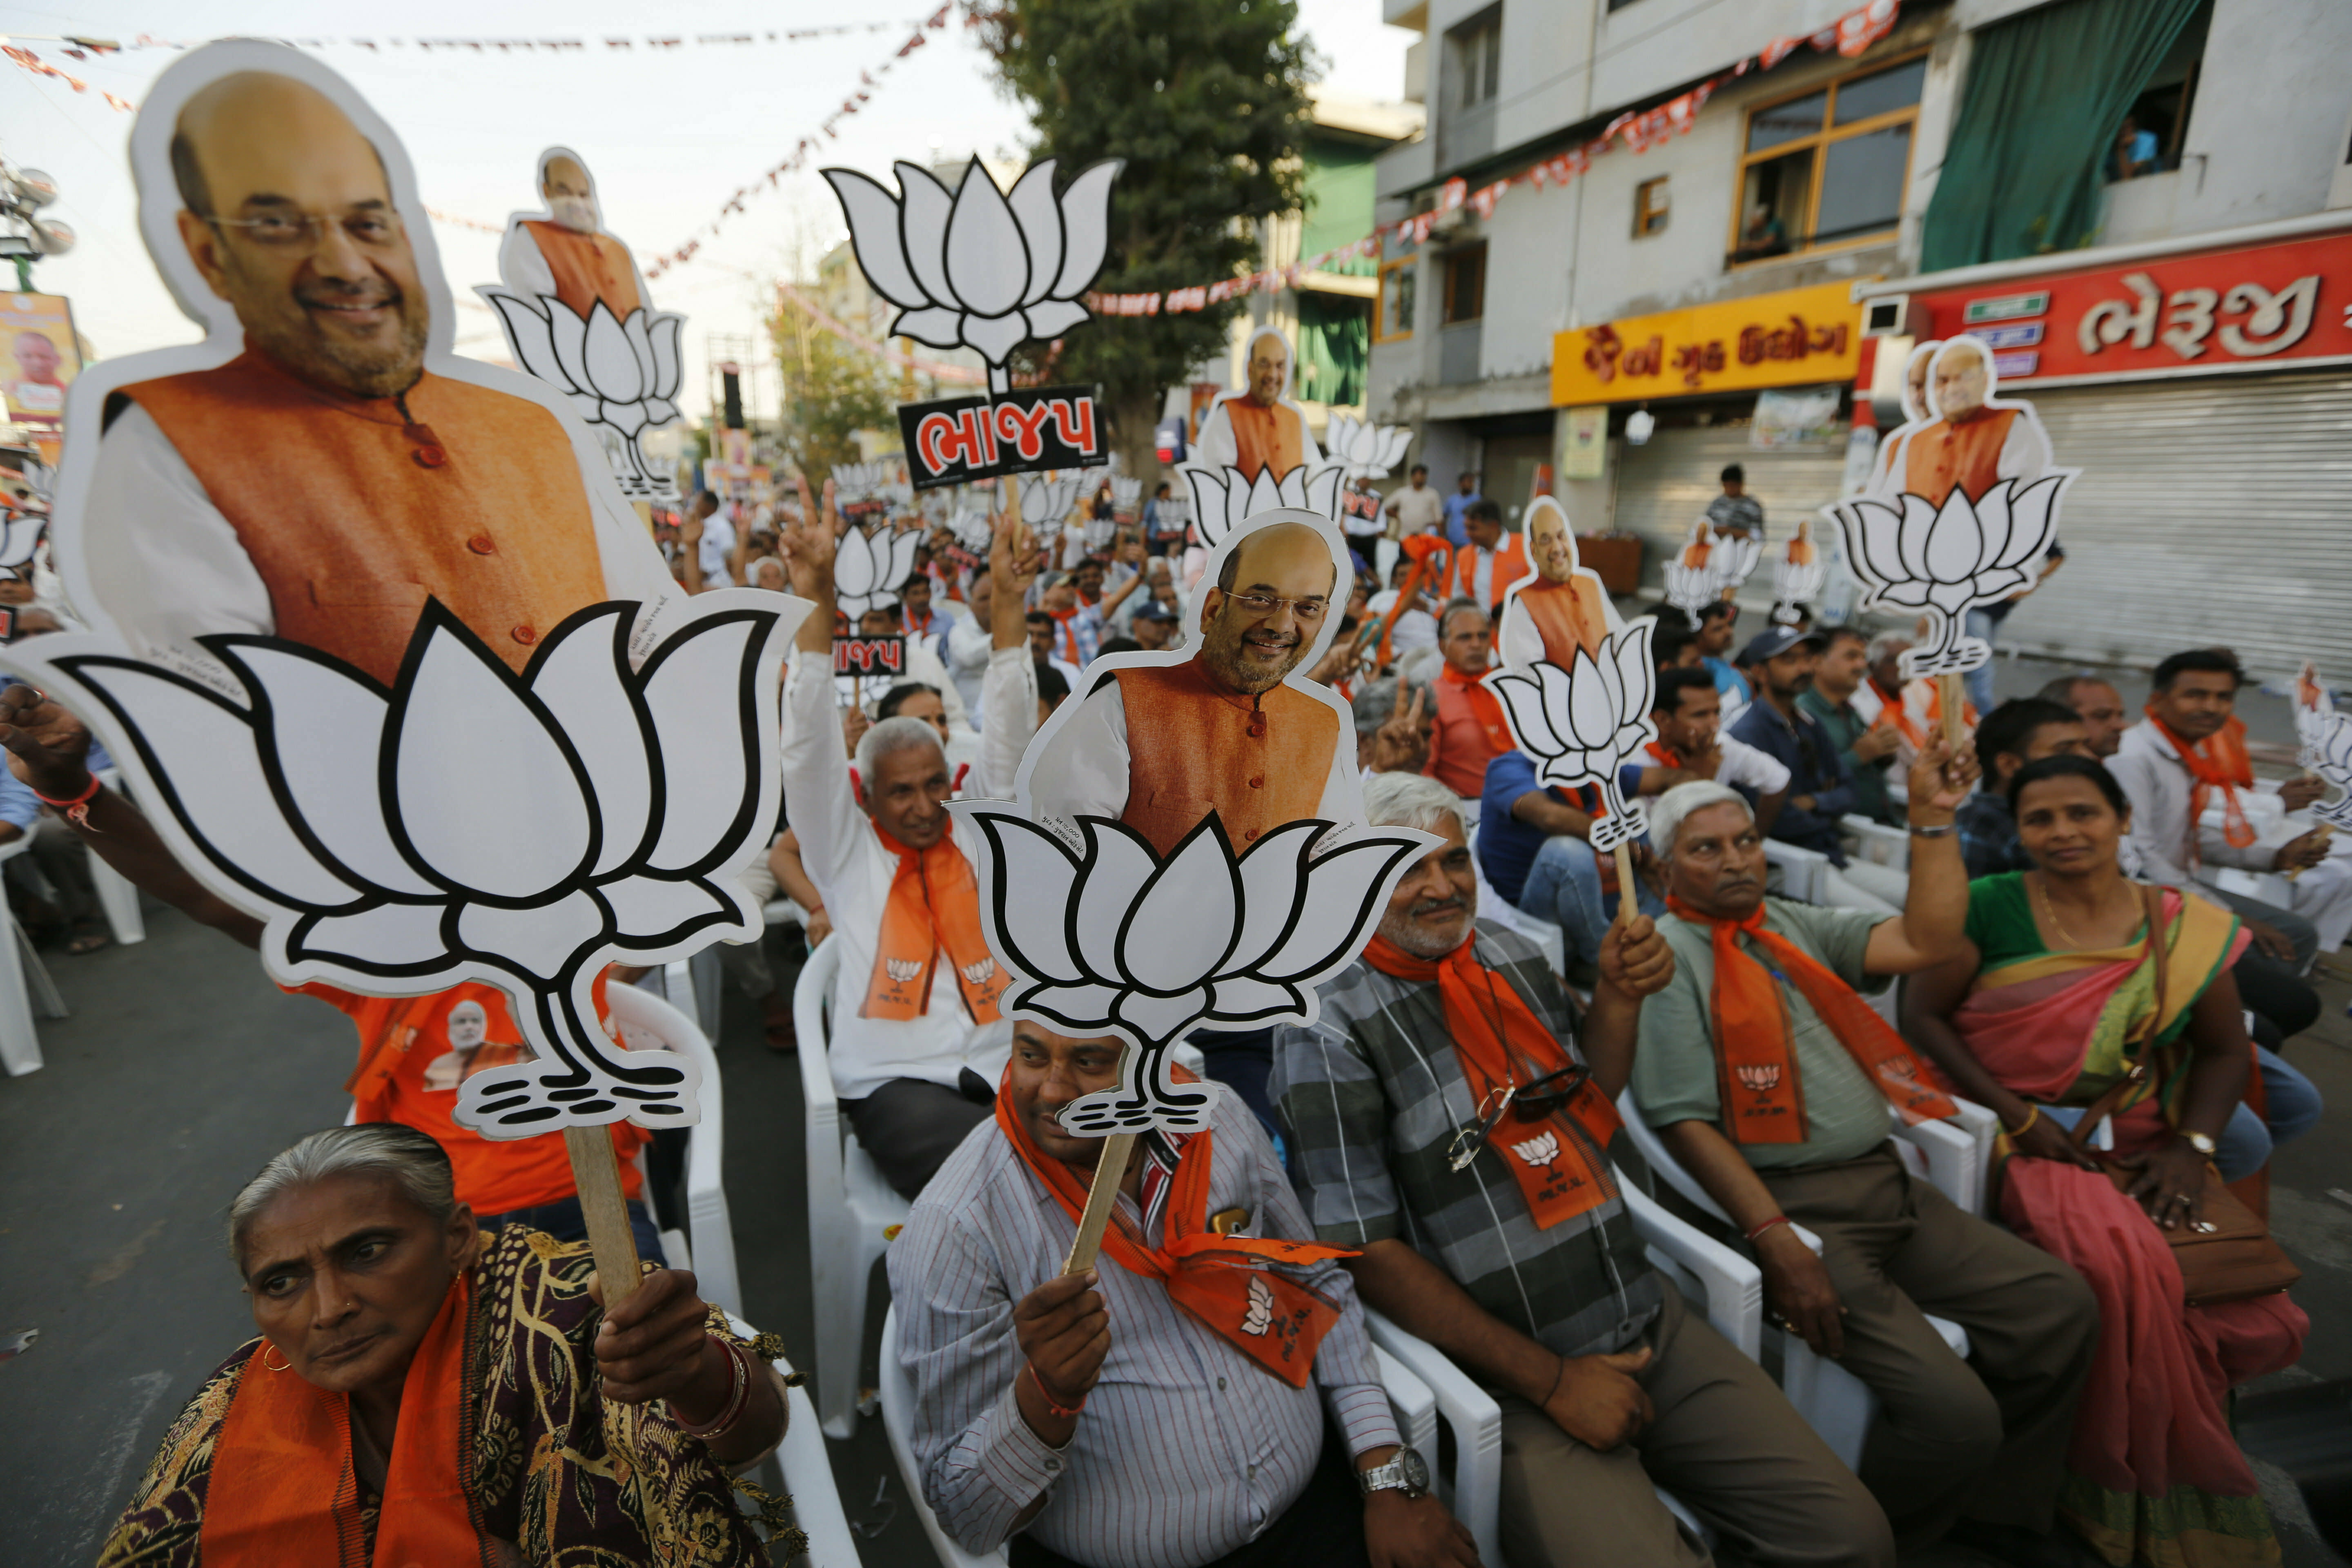 Supporters of India's ruling Bharatiya Janata Party (BJP) hold cutouts of party president Amit Shah with the party symbol during a public rally in Ahmadabad, India, Tuesday, March 26, 2019. India's national election will be held in seven phases between April 11 and May 19. (AP Photo/Ajit Solanki)